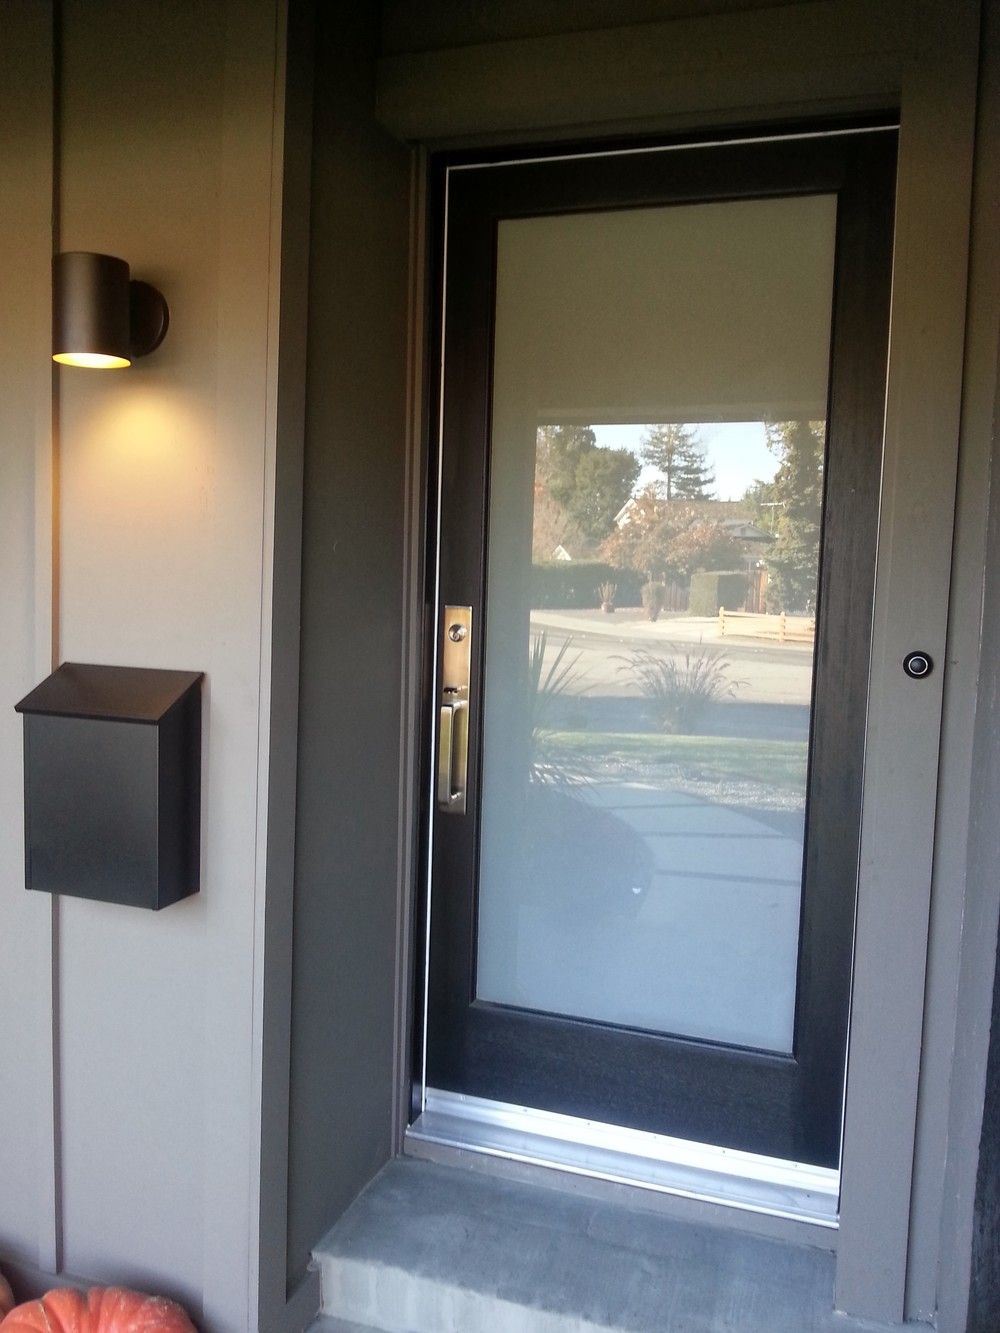 Le Meilleur New Laminated Glass Panel Front Door With Lovely Hardware Ce Mois Ci